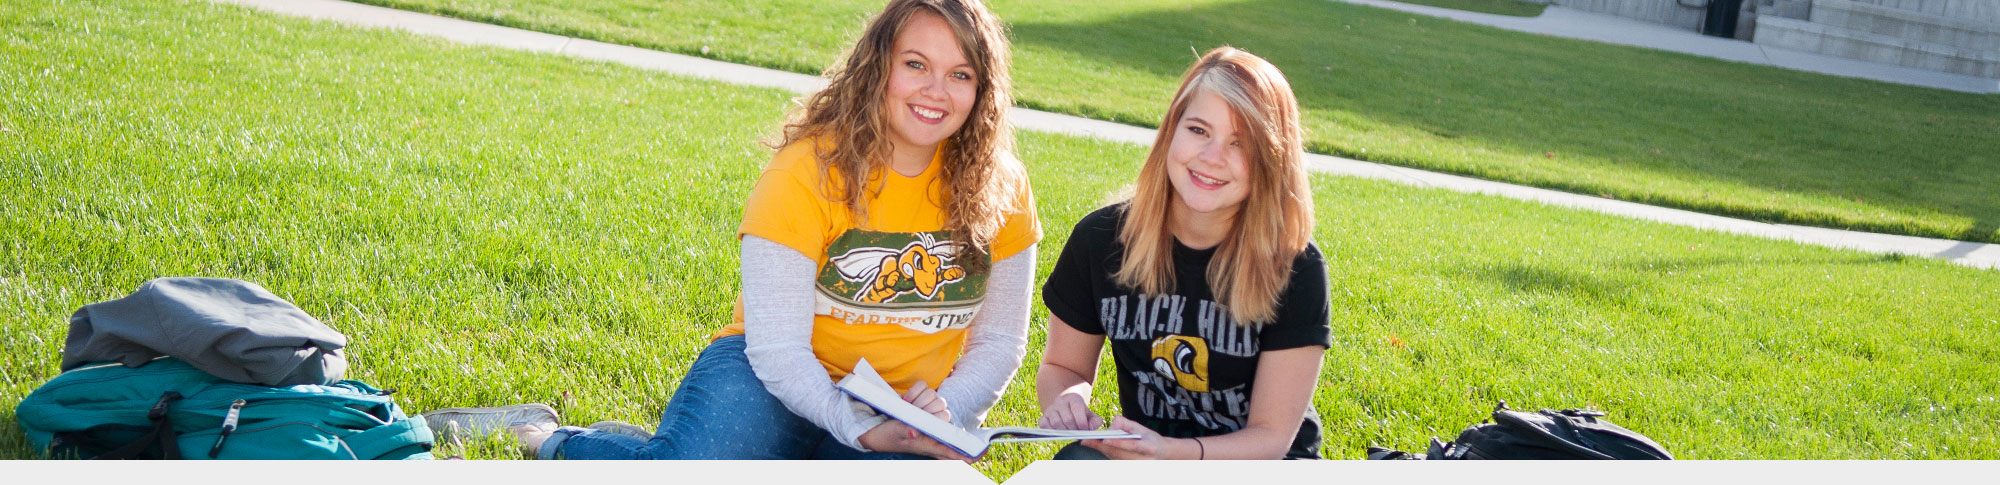 Take Dual Credit courses through BHSU.